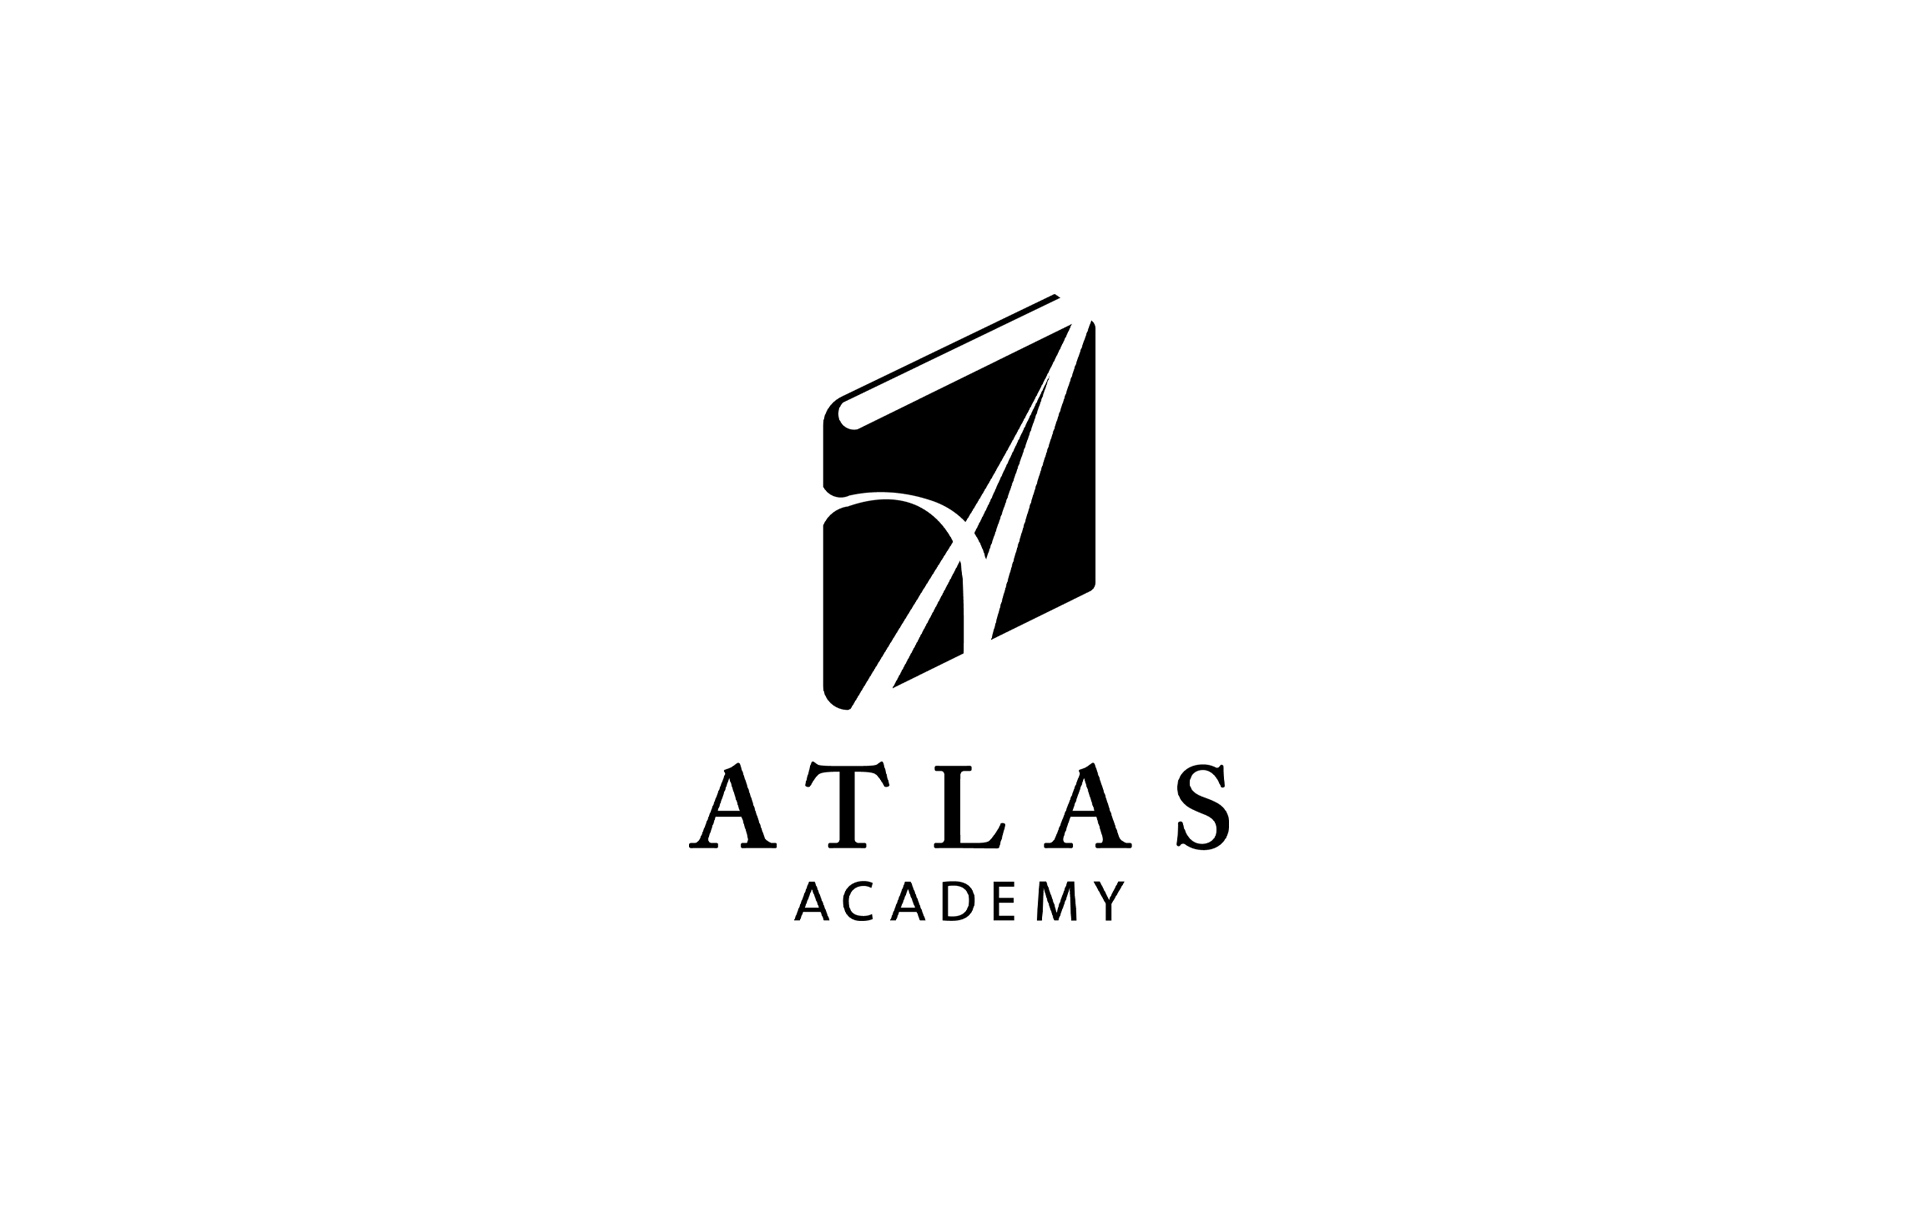 Atlas Academy Logo Design By Scott Luscombe